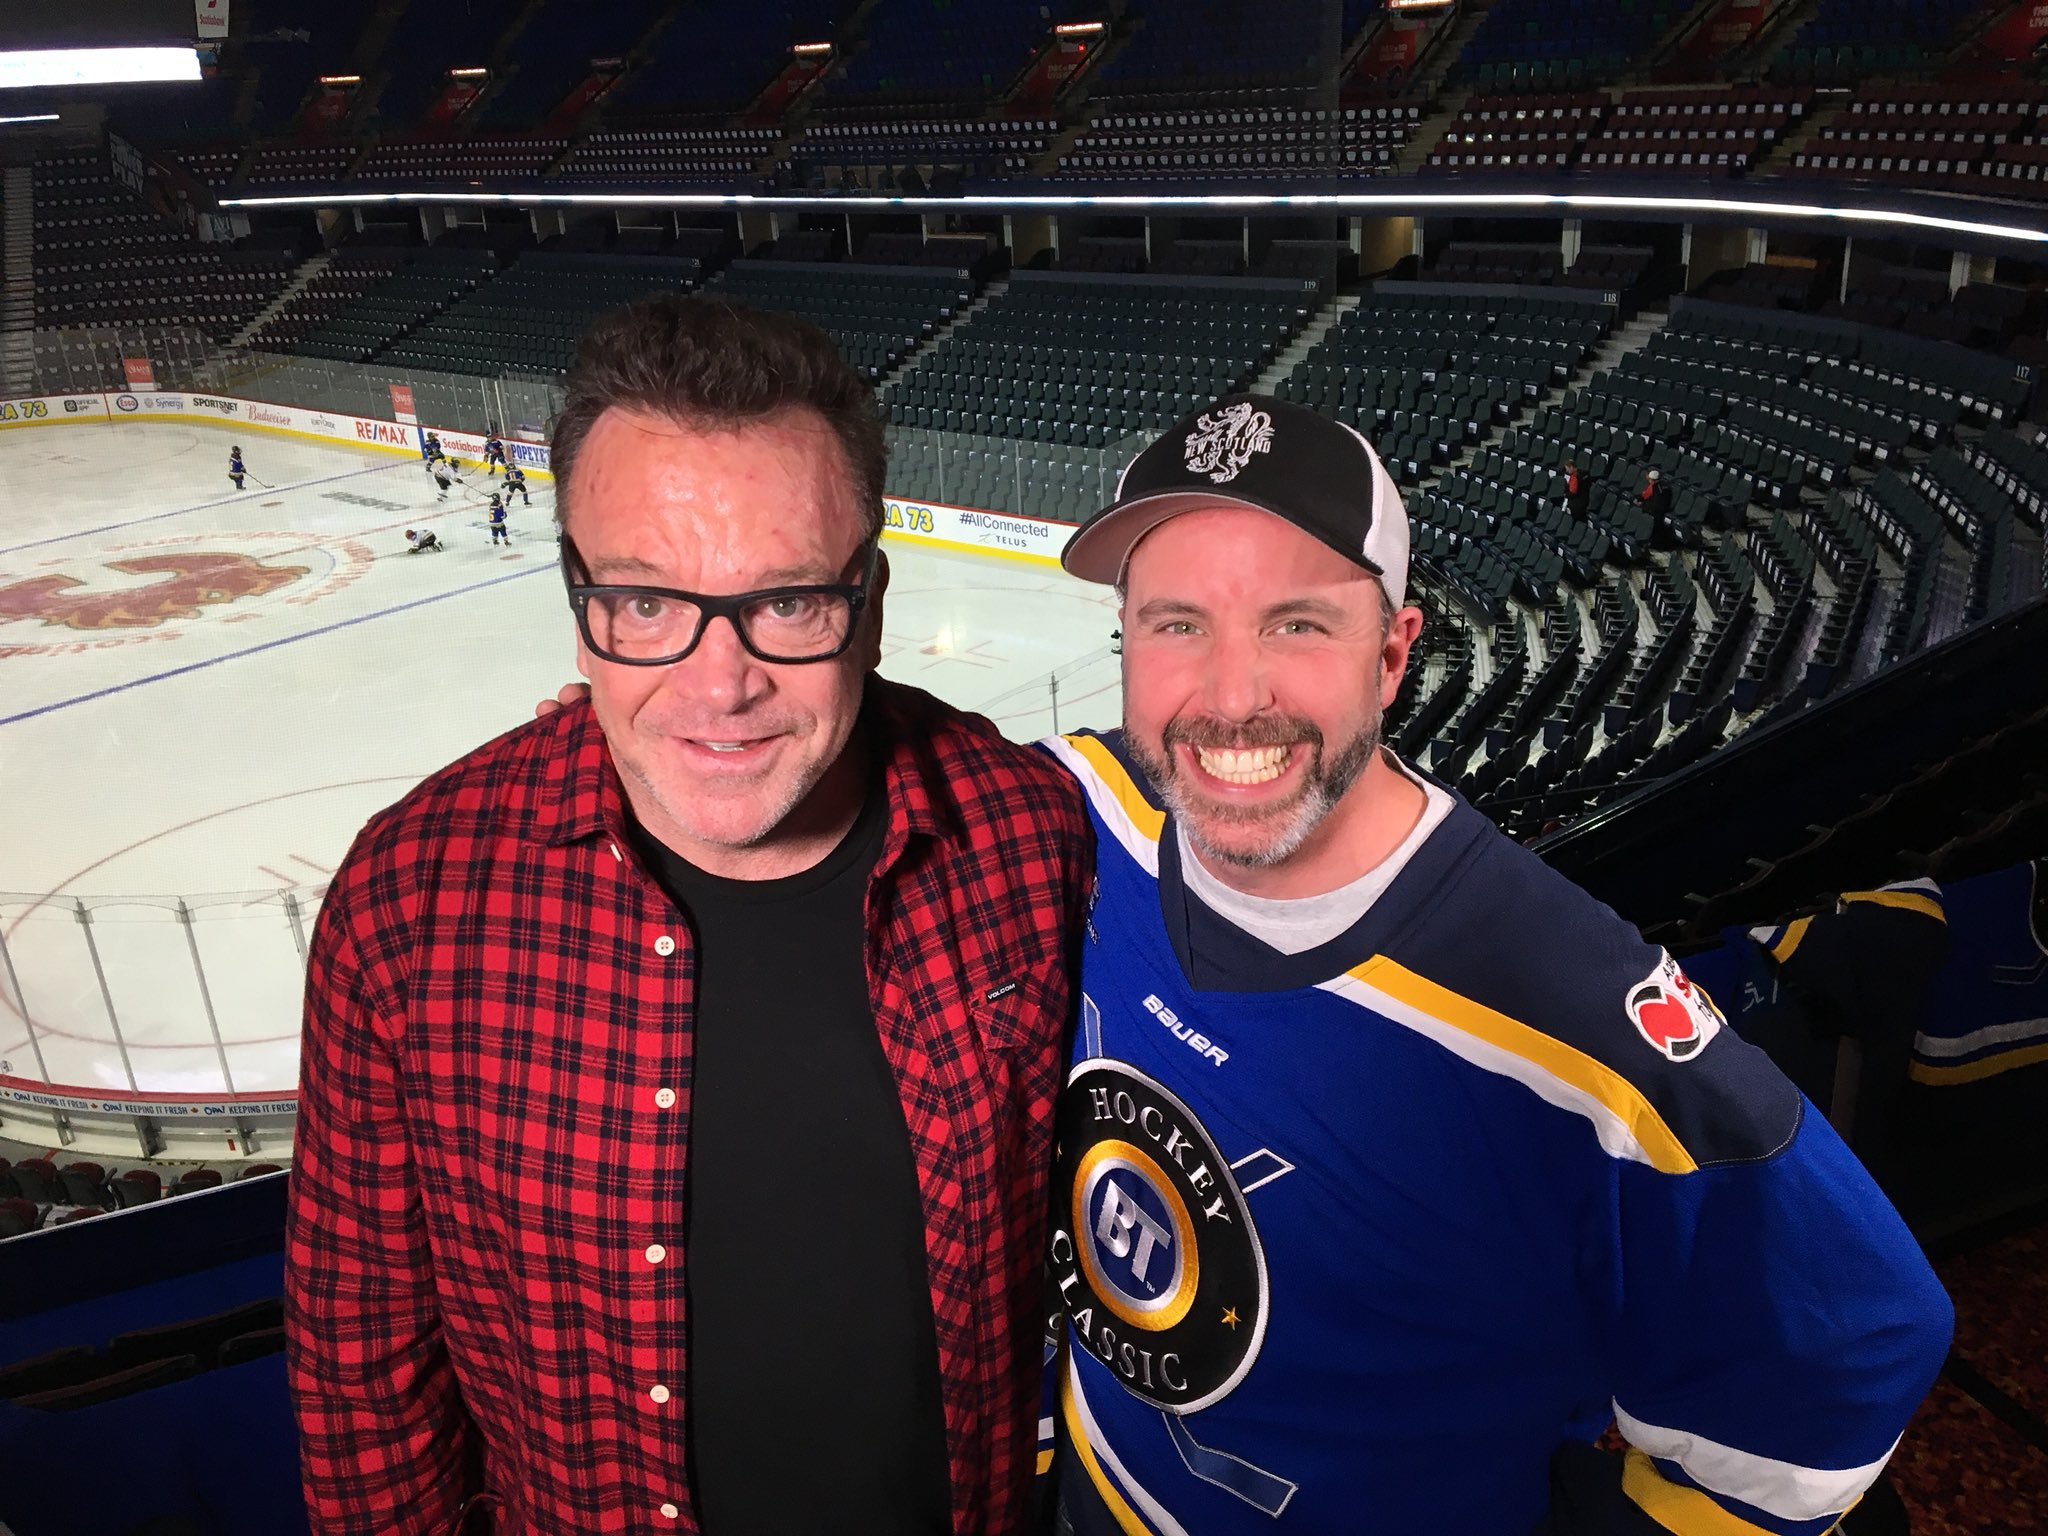 RT @CameraGuyNick: Ok. So meeting Tom Arnold was pretty cool! My face may have given that away.... #justalittle https://t.co/lCRiMgPUrC